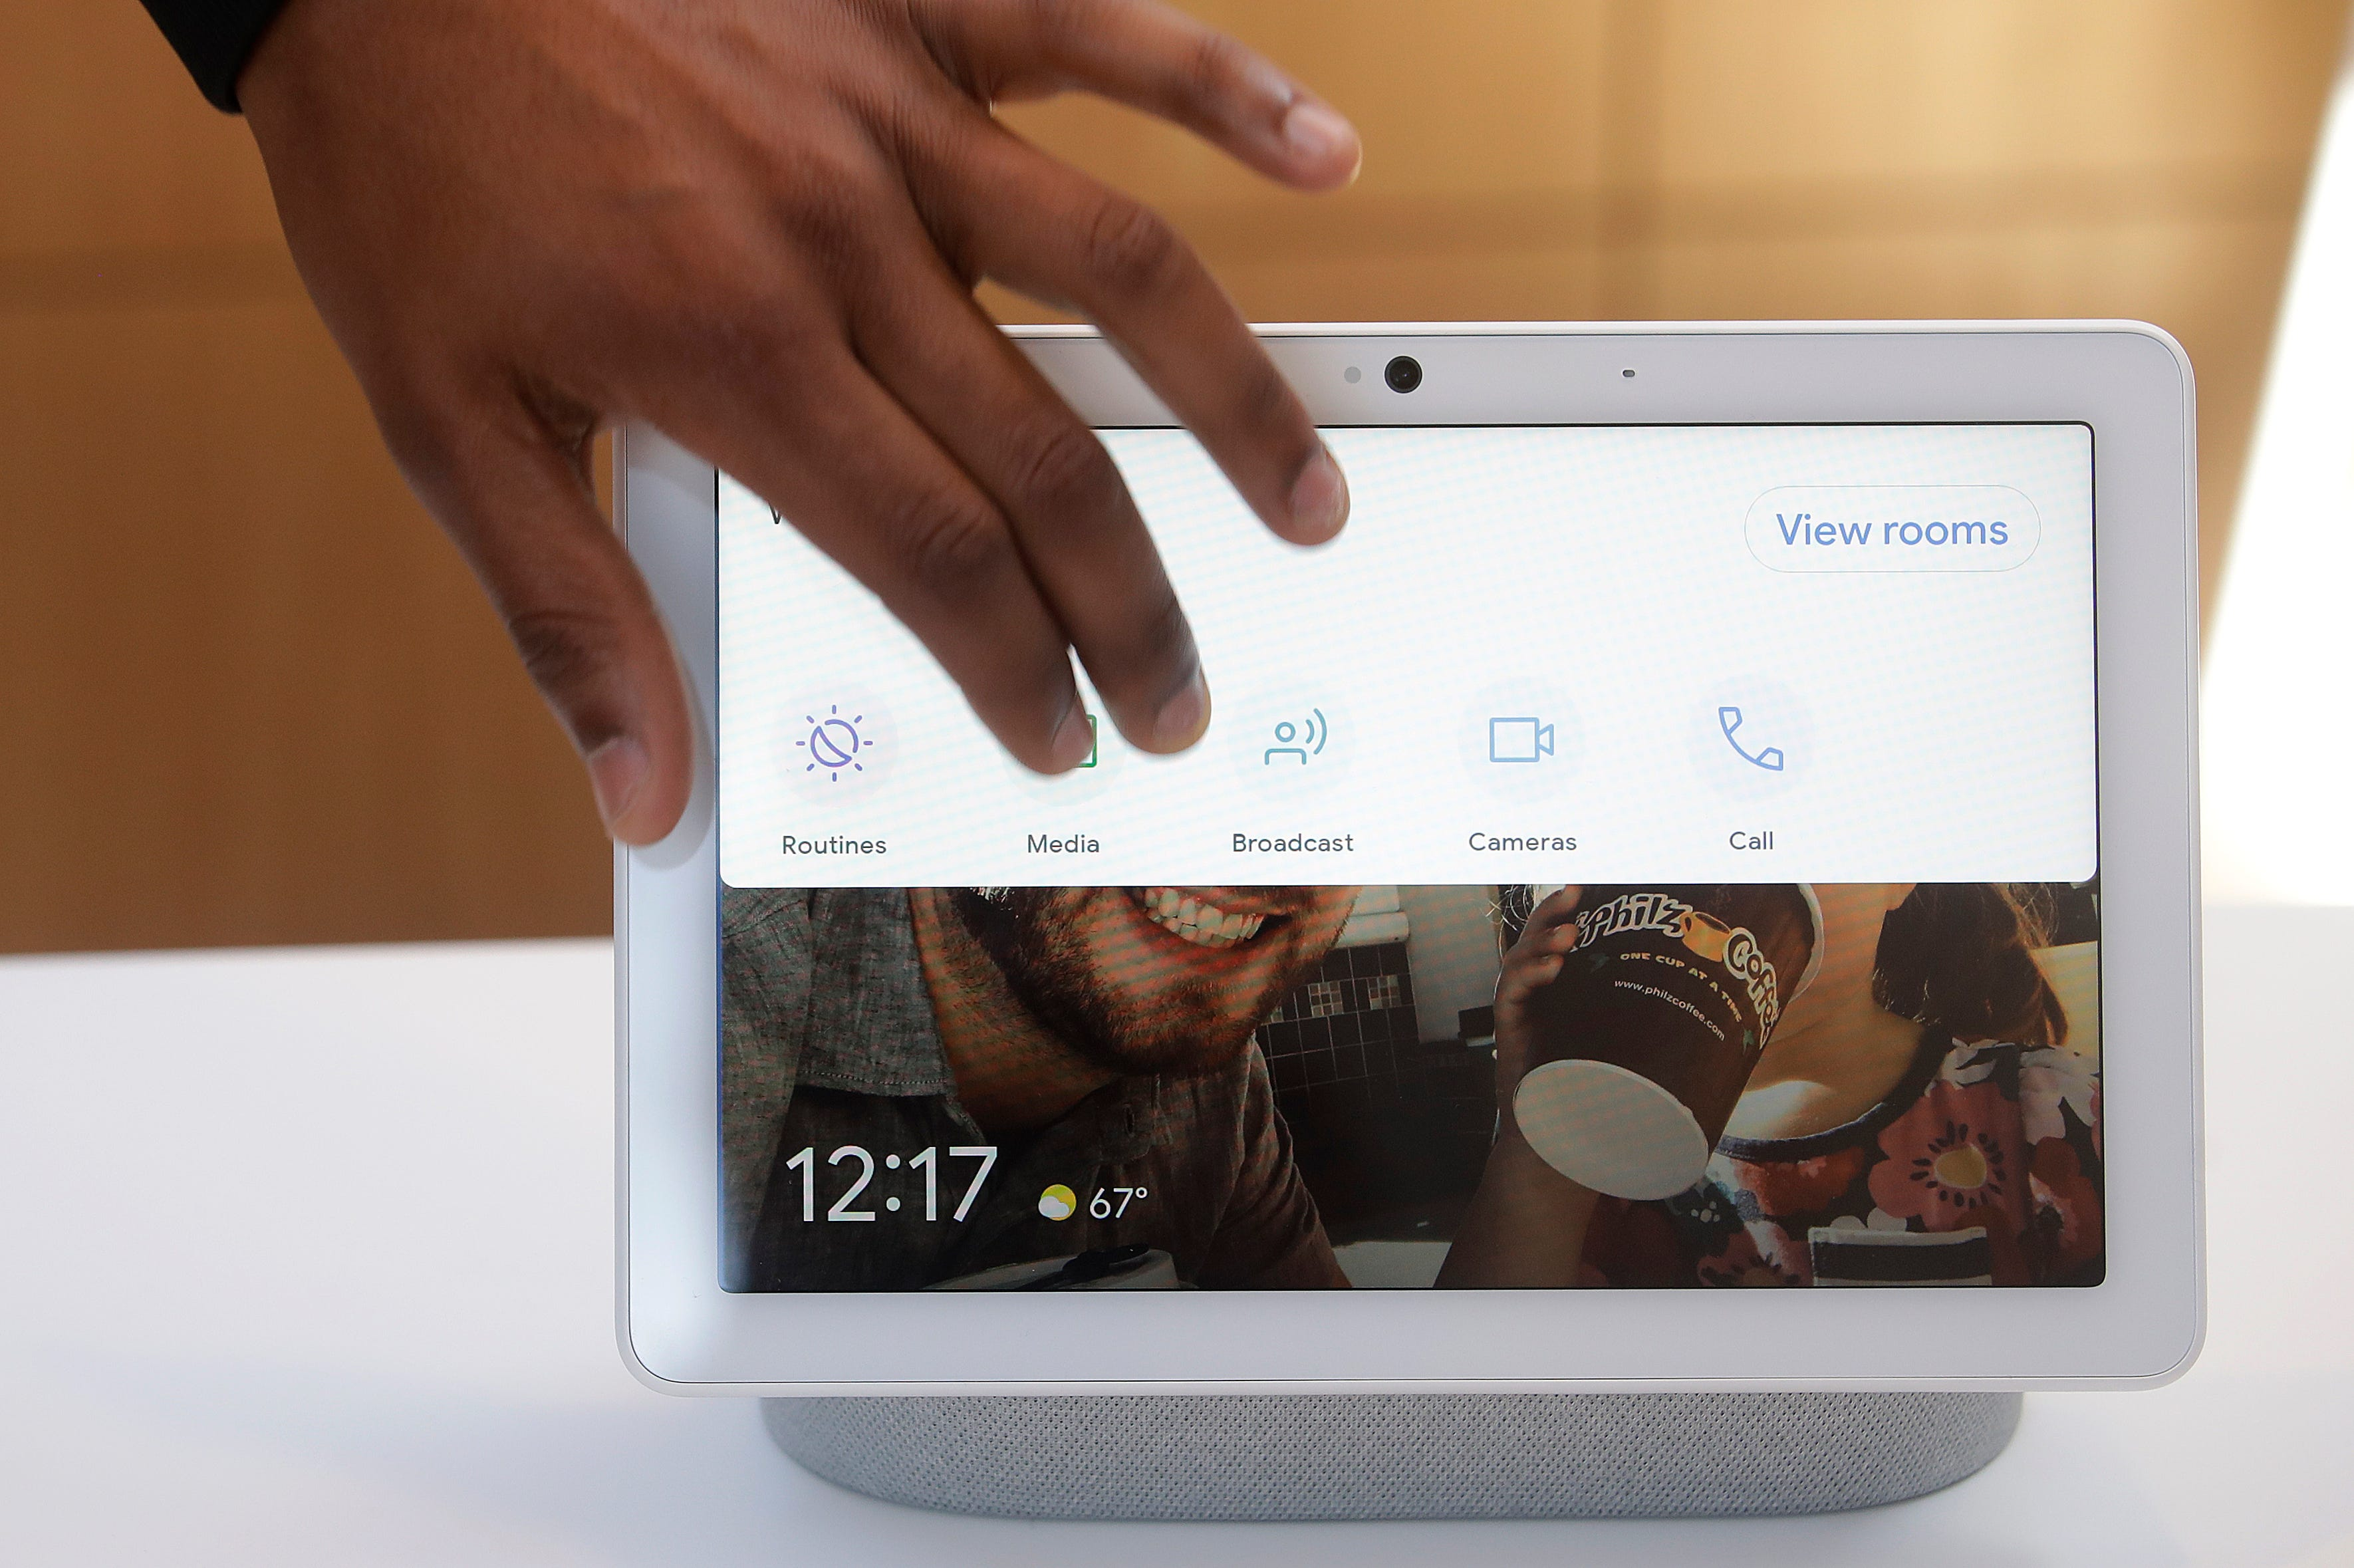 Google's Kayitta Johnson gives a demonstration of the Nest Hub Max at the Google I/O conference in Mountain View, Calif., Tuesday, May 7, 2019.